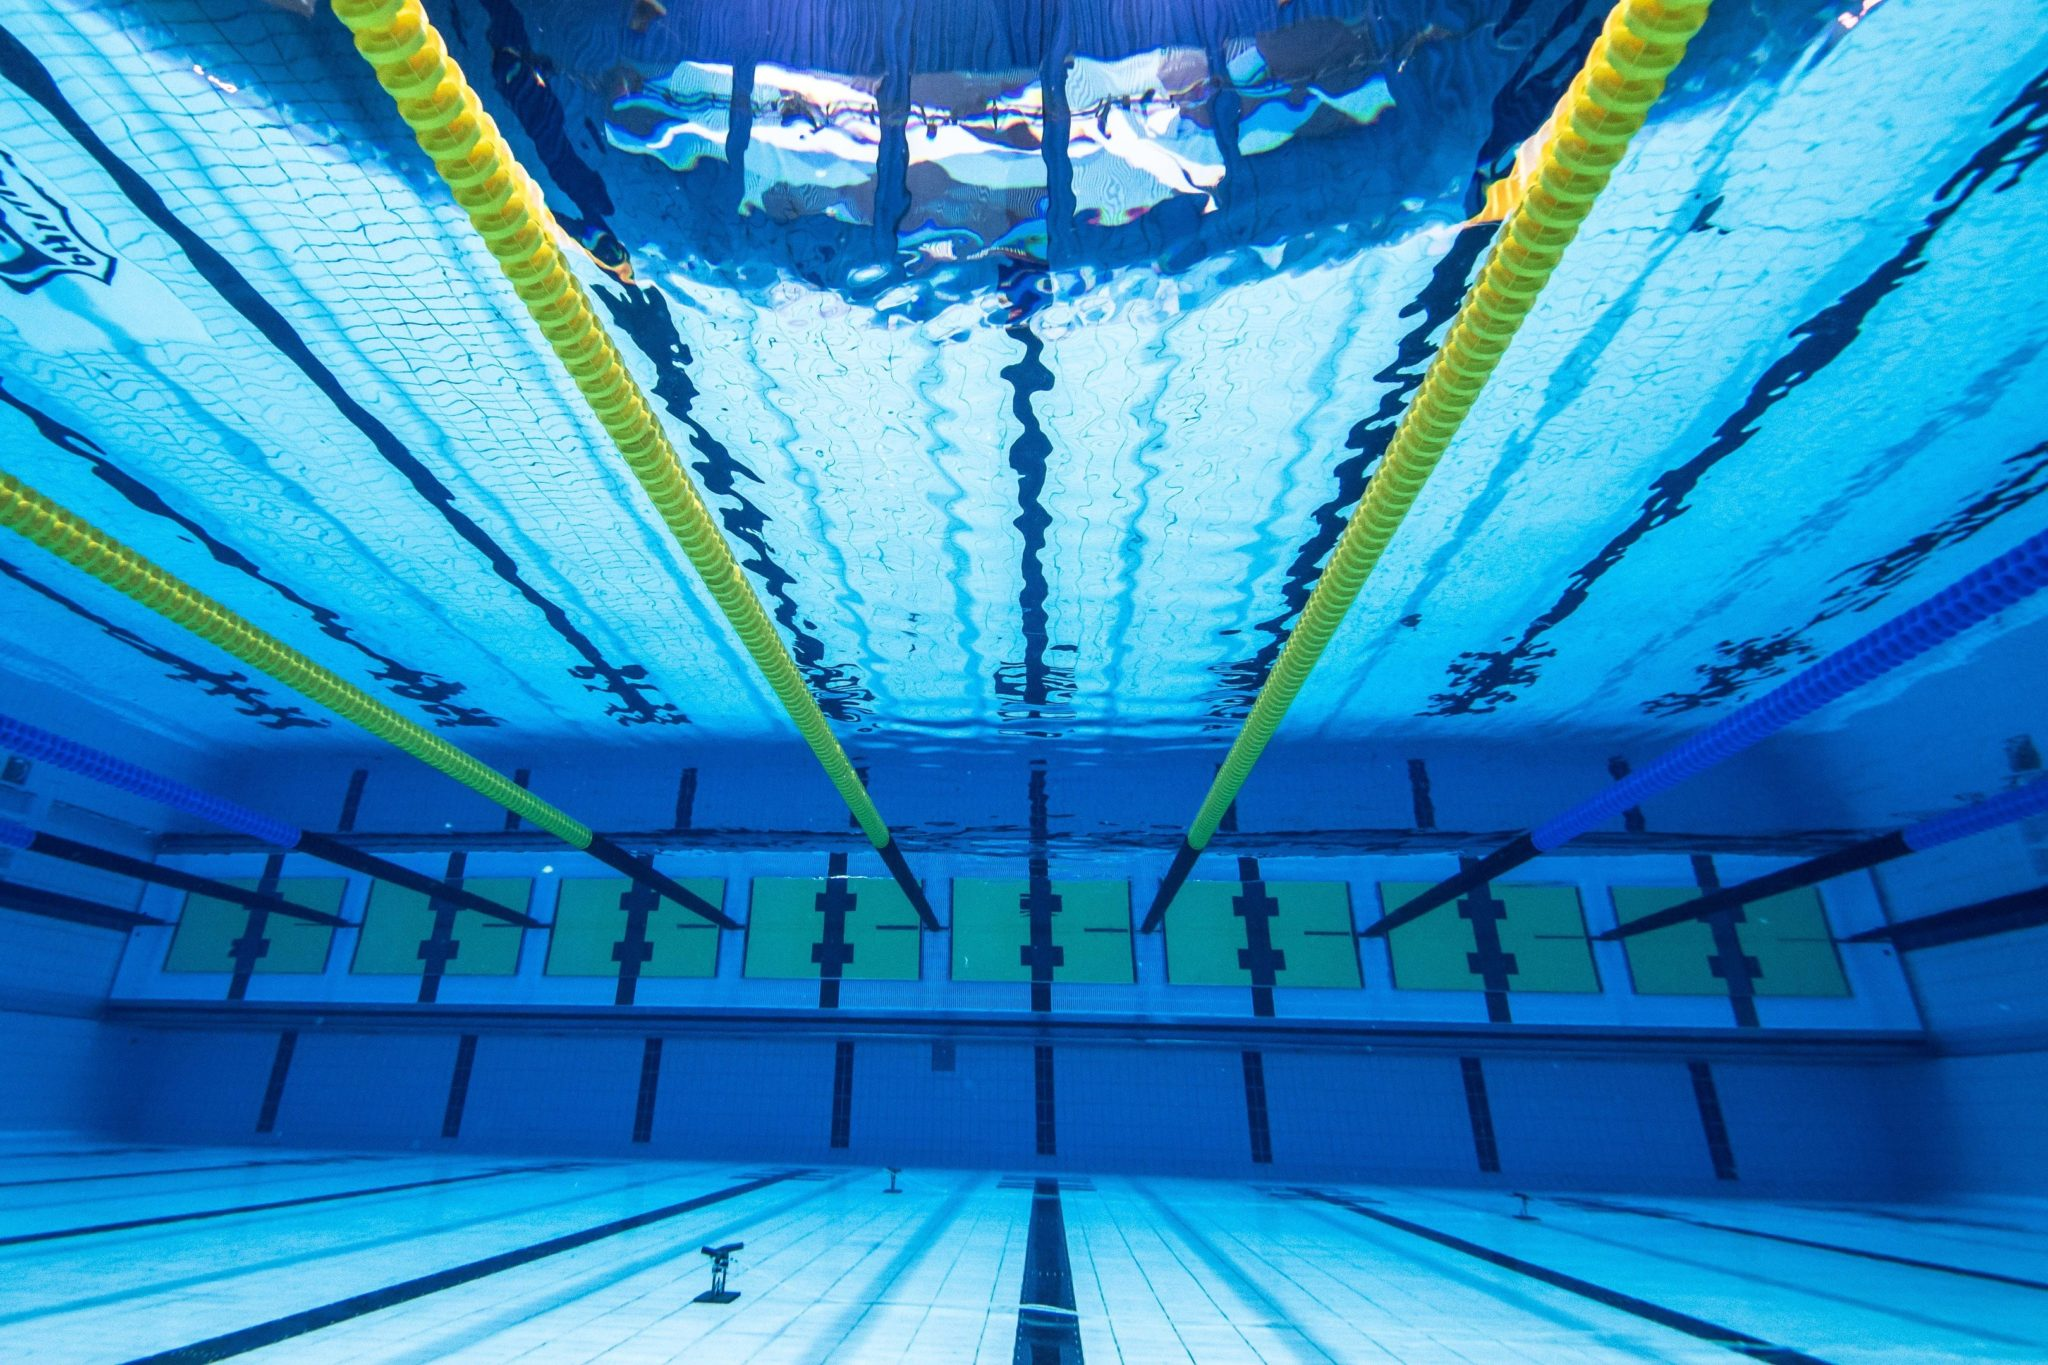 olympic swimming pool underwater.  Pool To Olympic Swimming Pool Underwater O